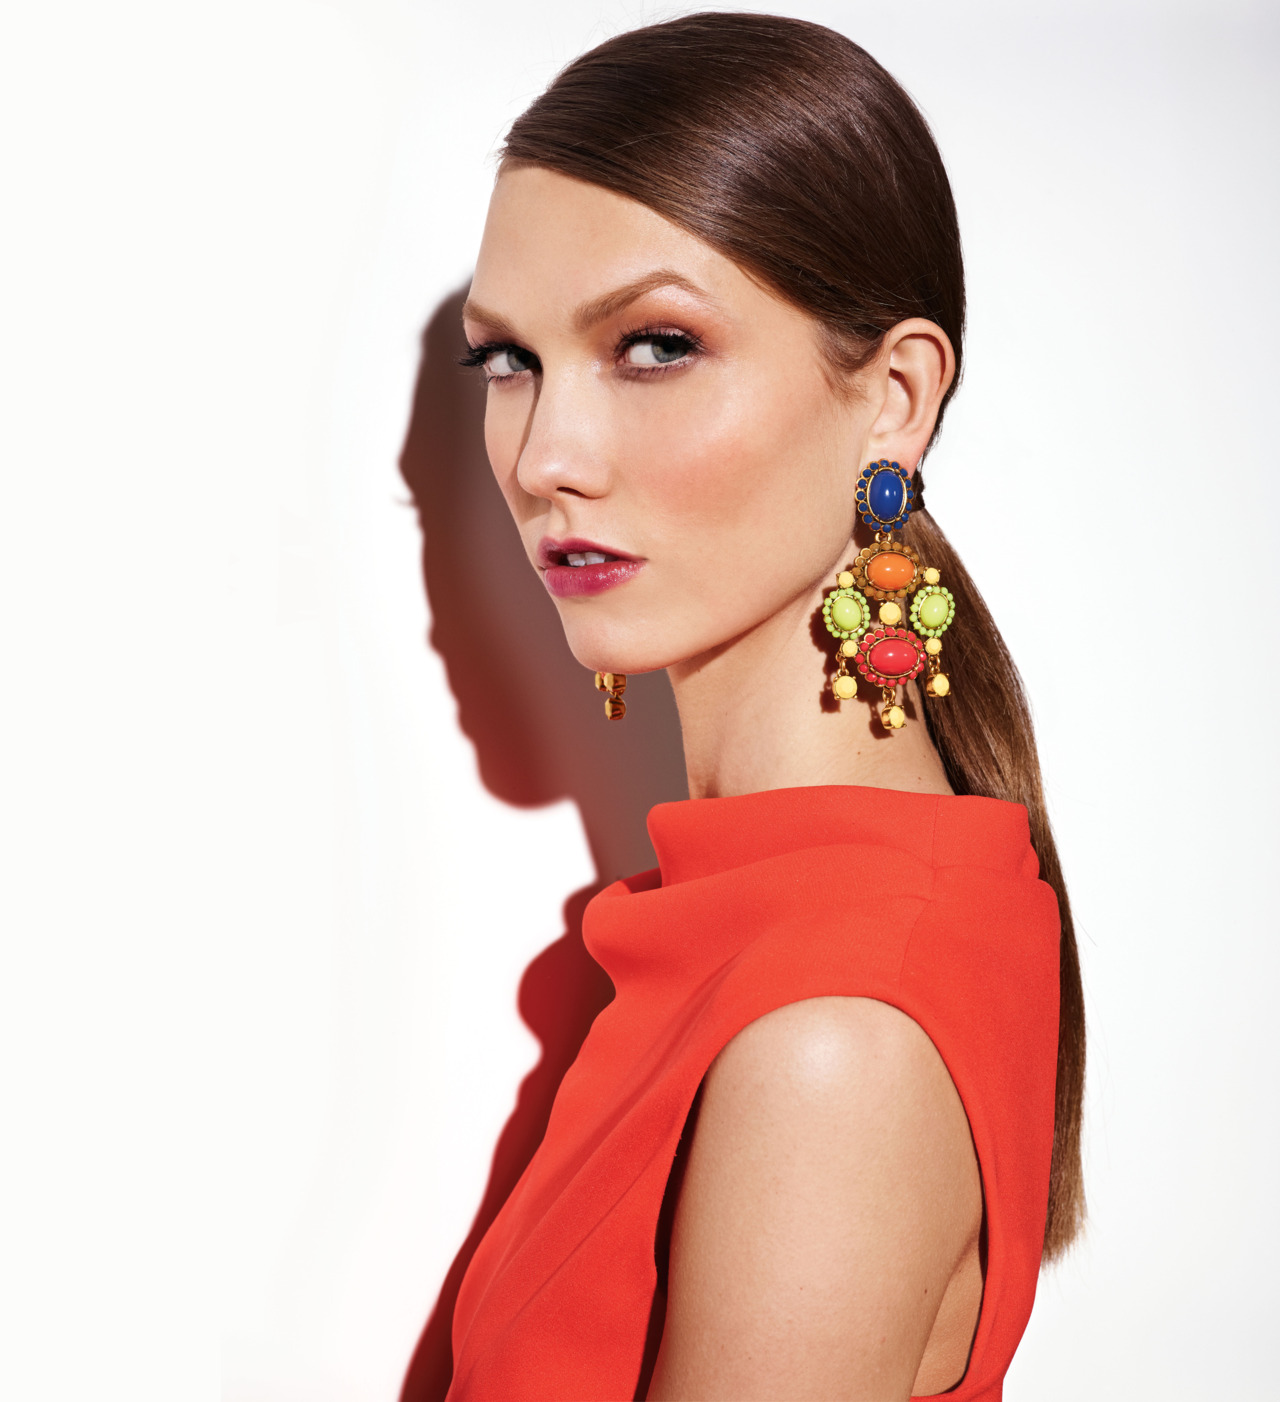 The creative element of a statement earring not only gives your look some spunk, but others will naturally be drawn upwards towards your face and accentuates your best features.